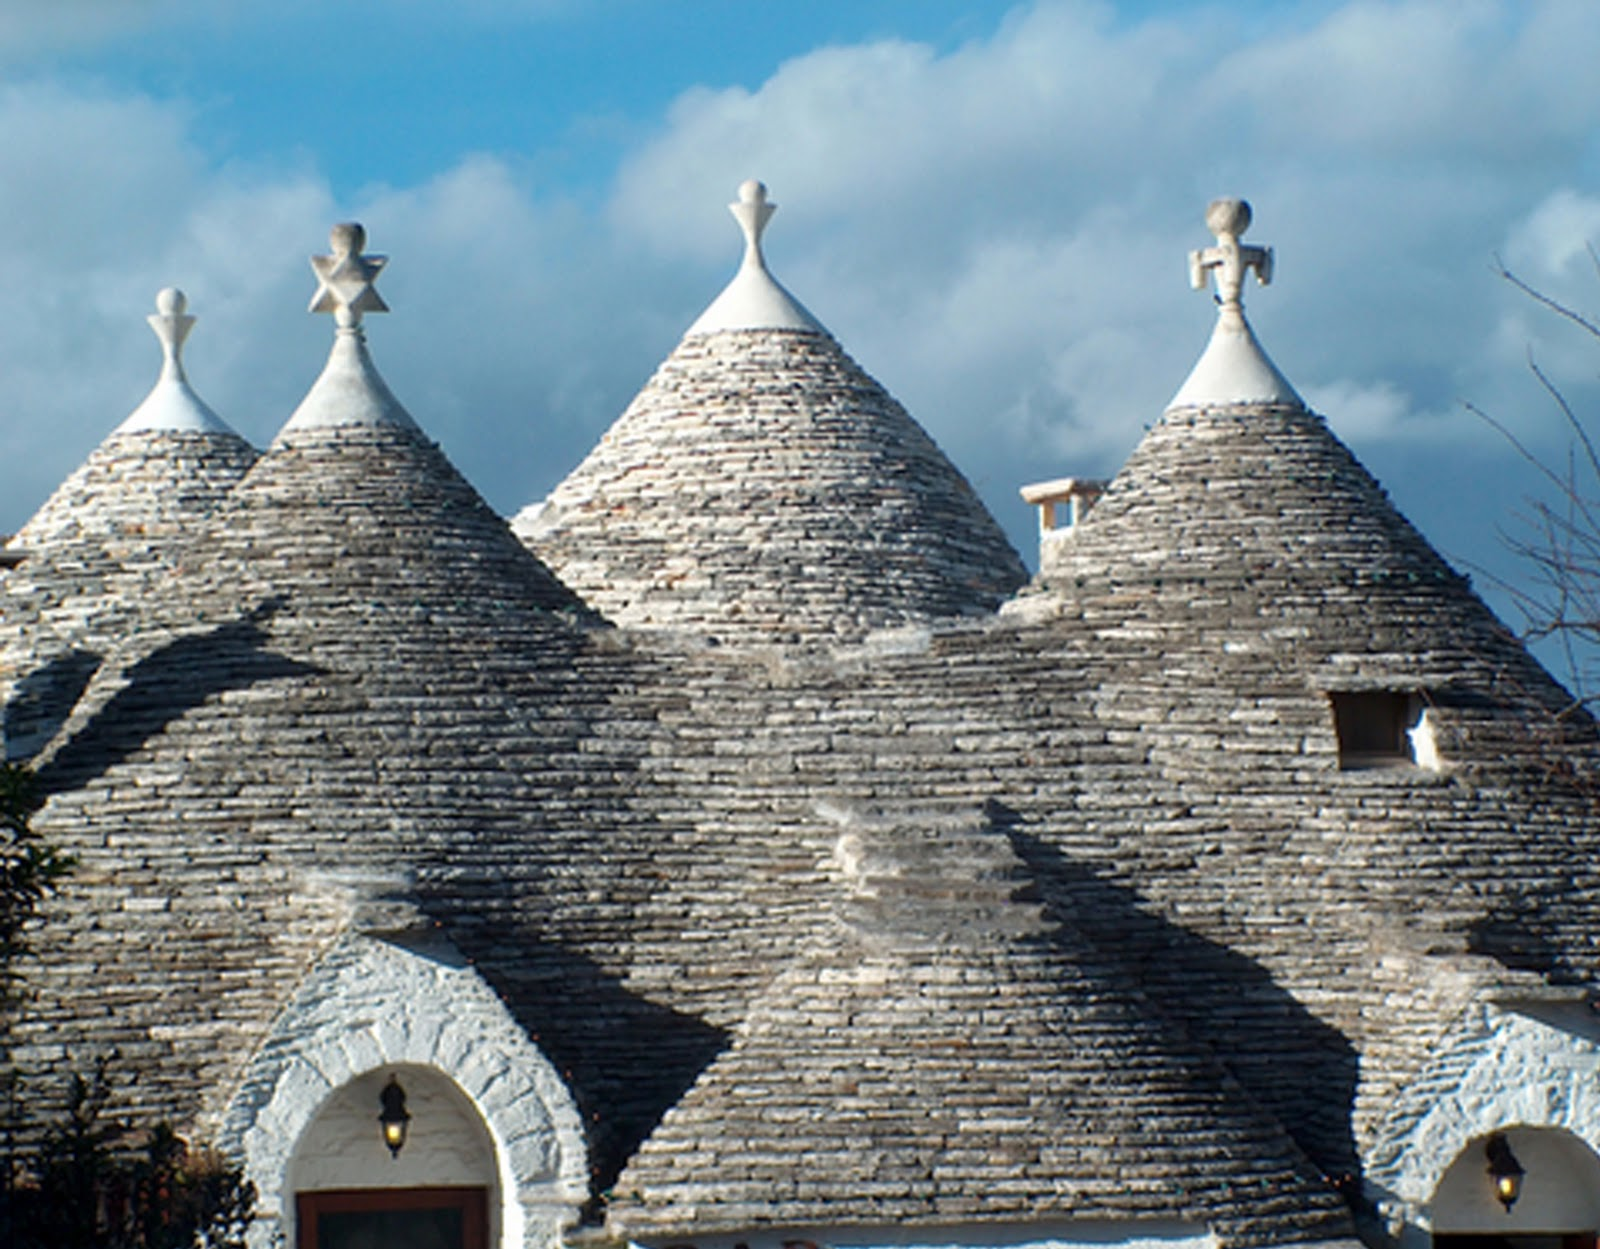 Trullo - Wikipedia